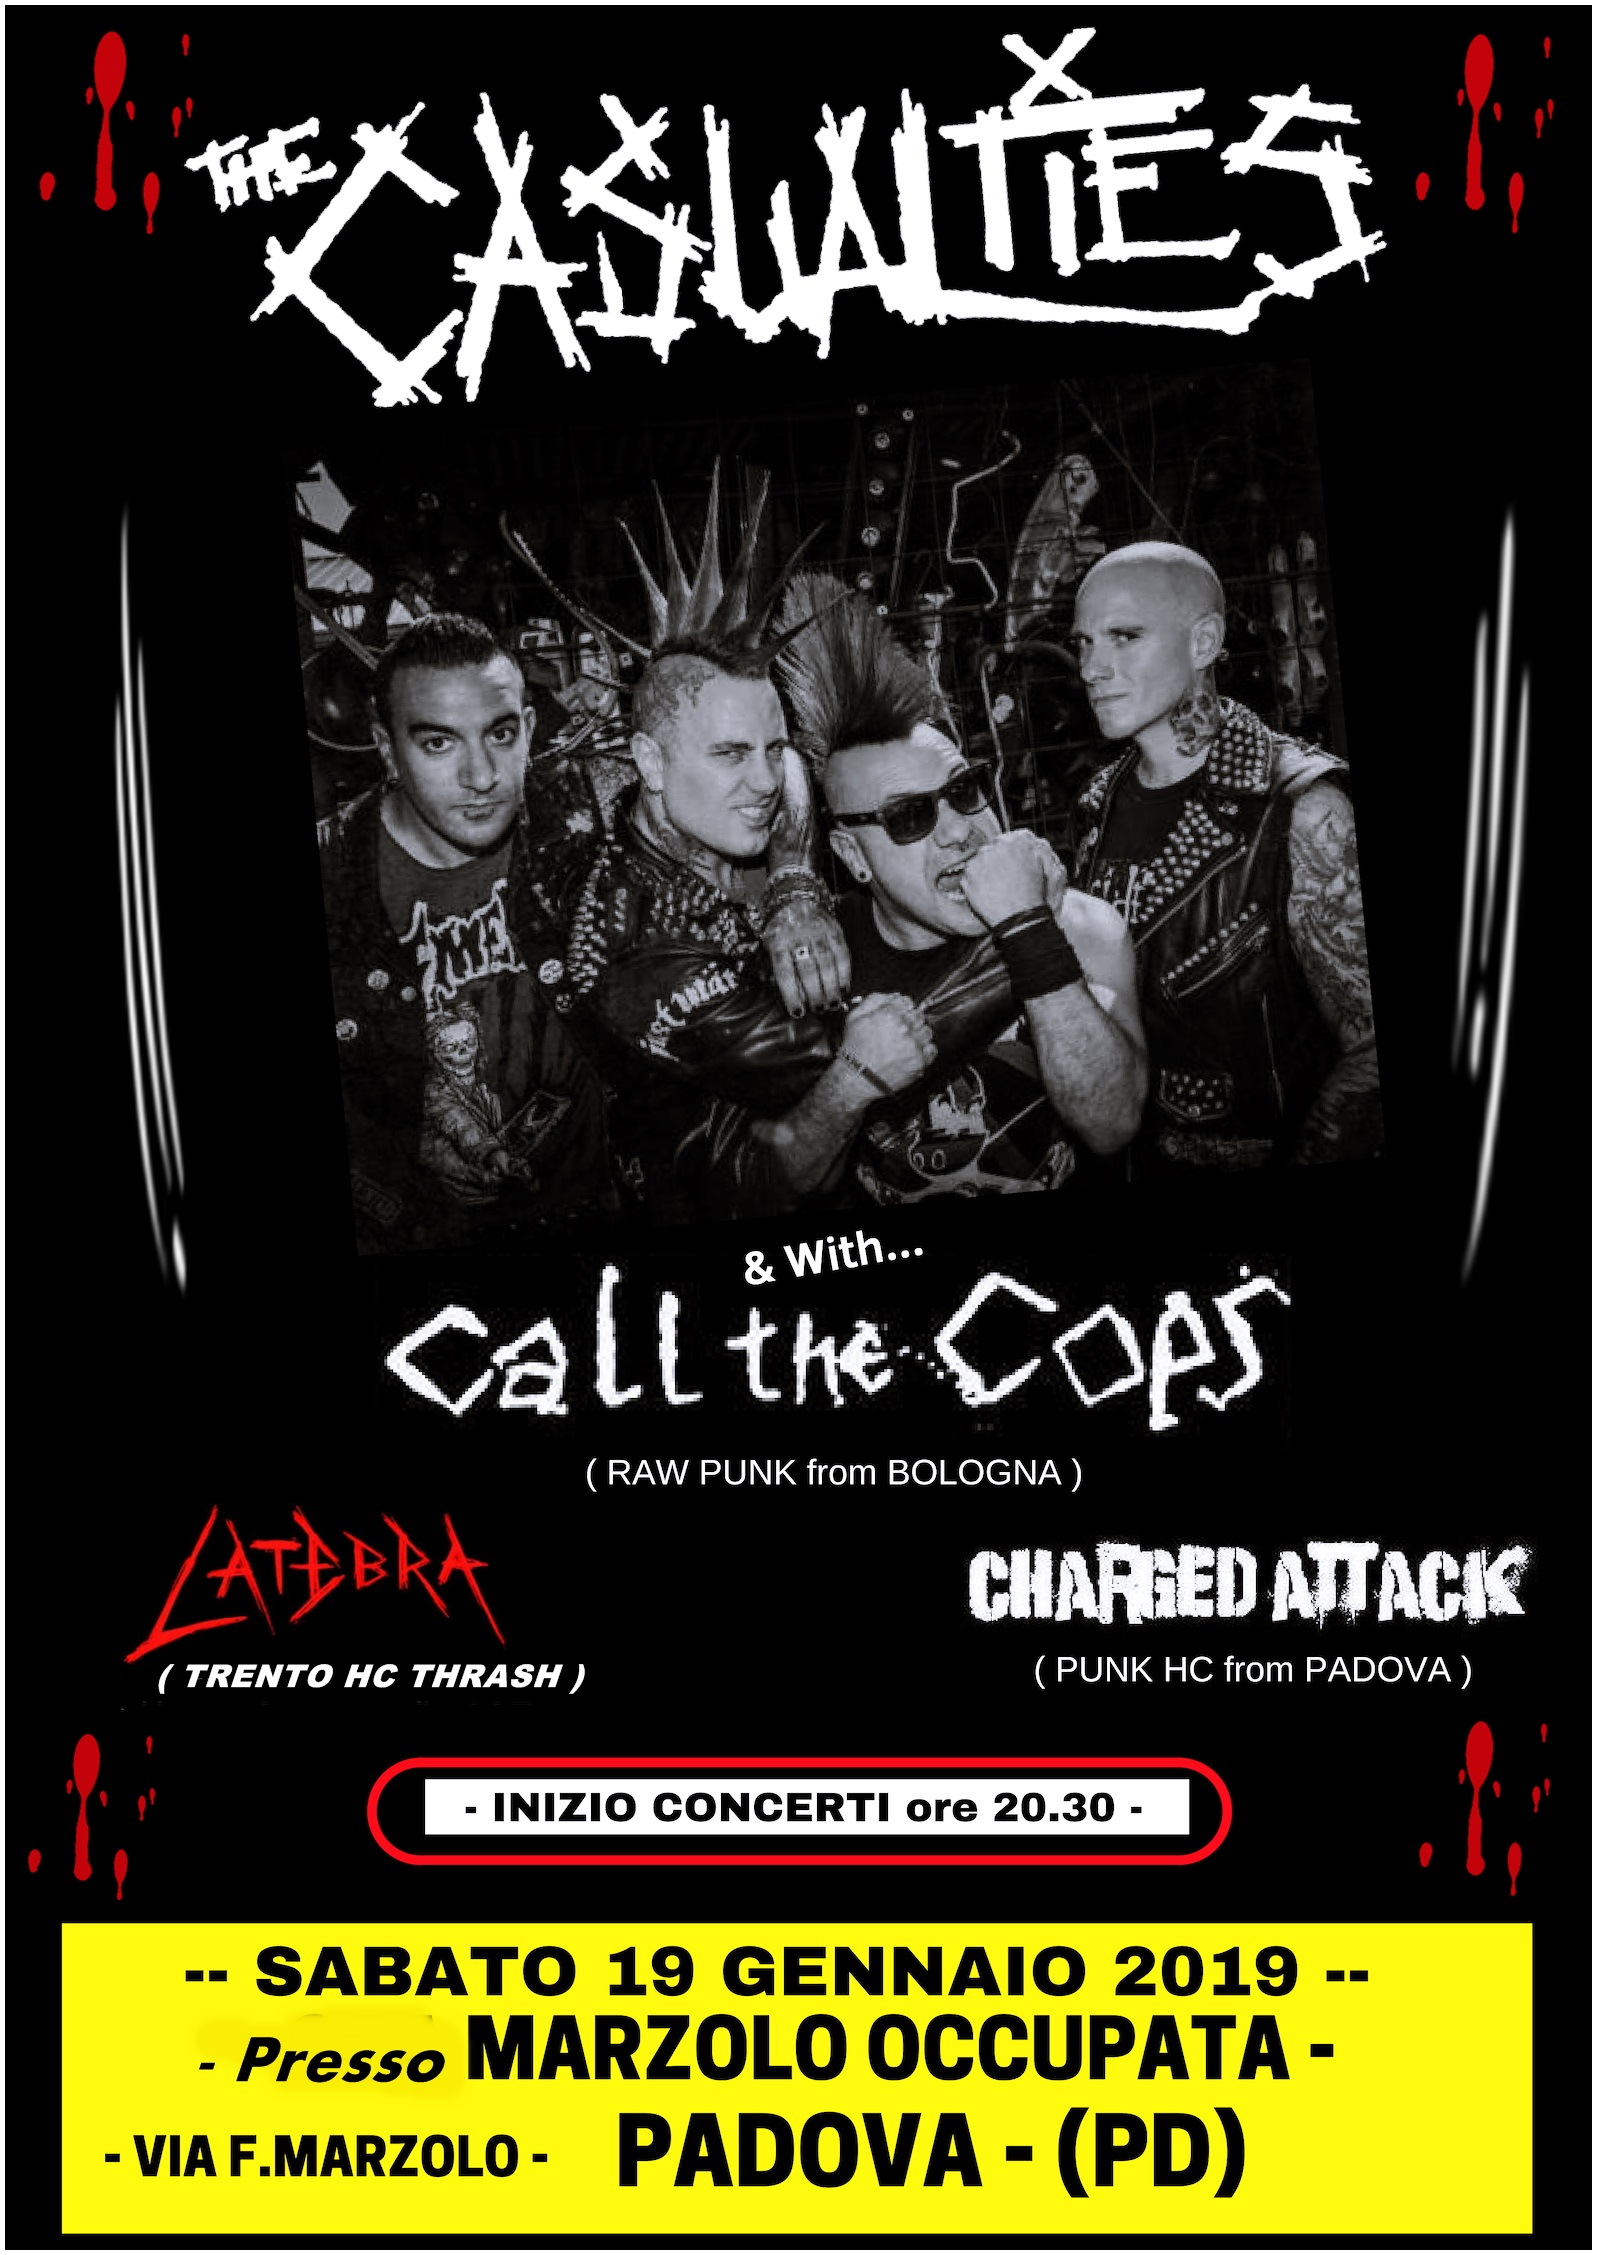 The Casualties + Call the Cops + Charged Attack + Latebra